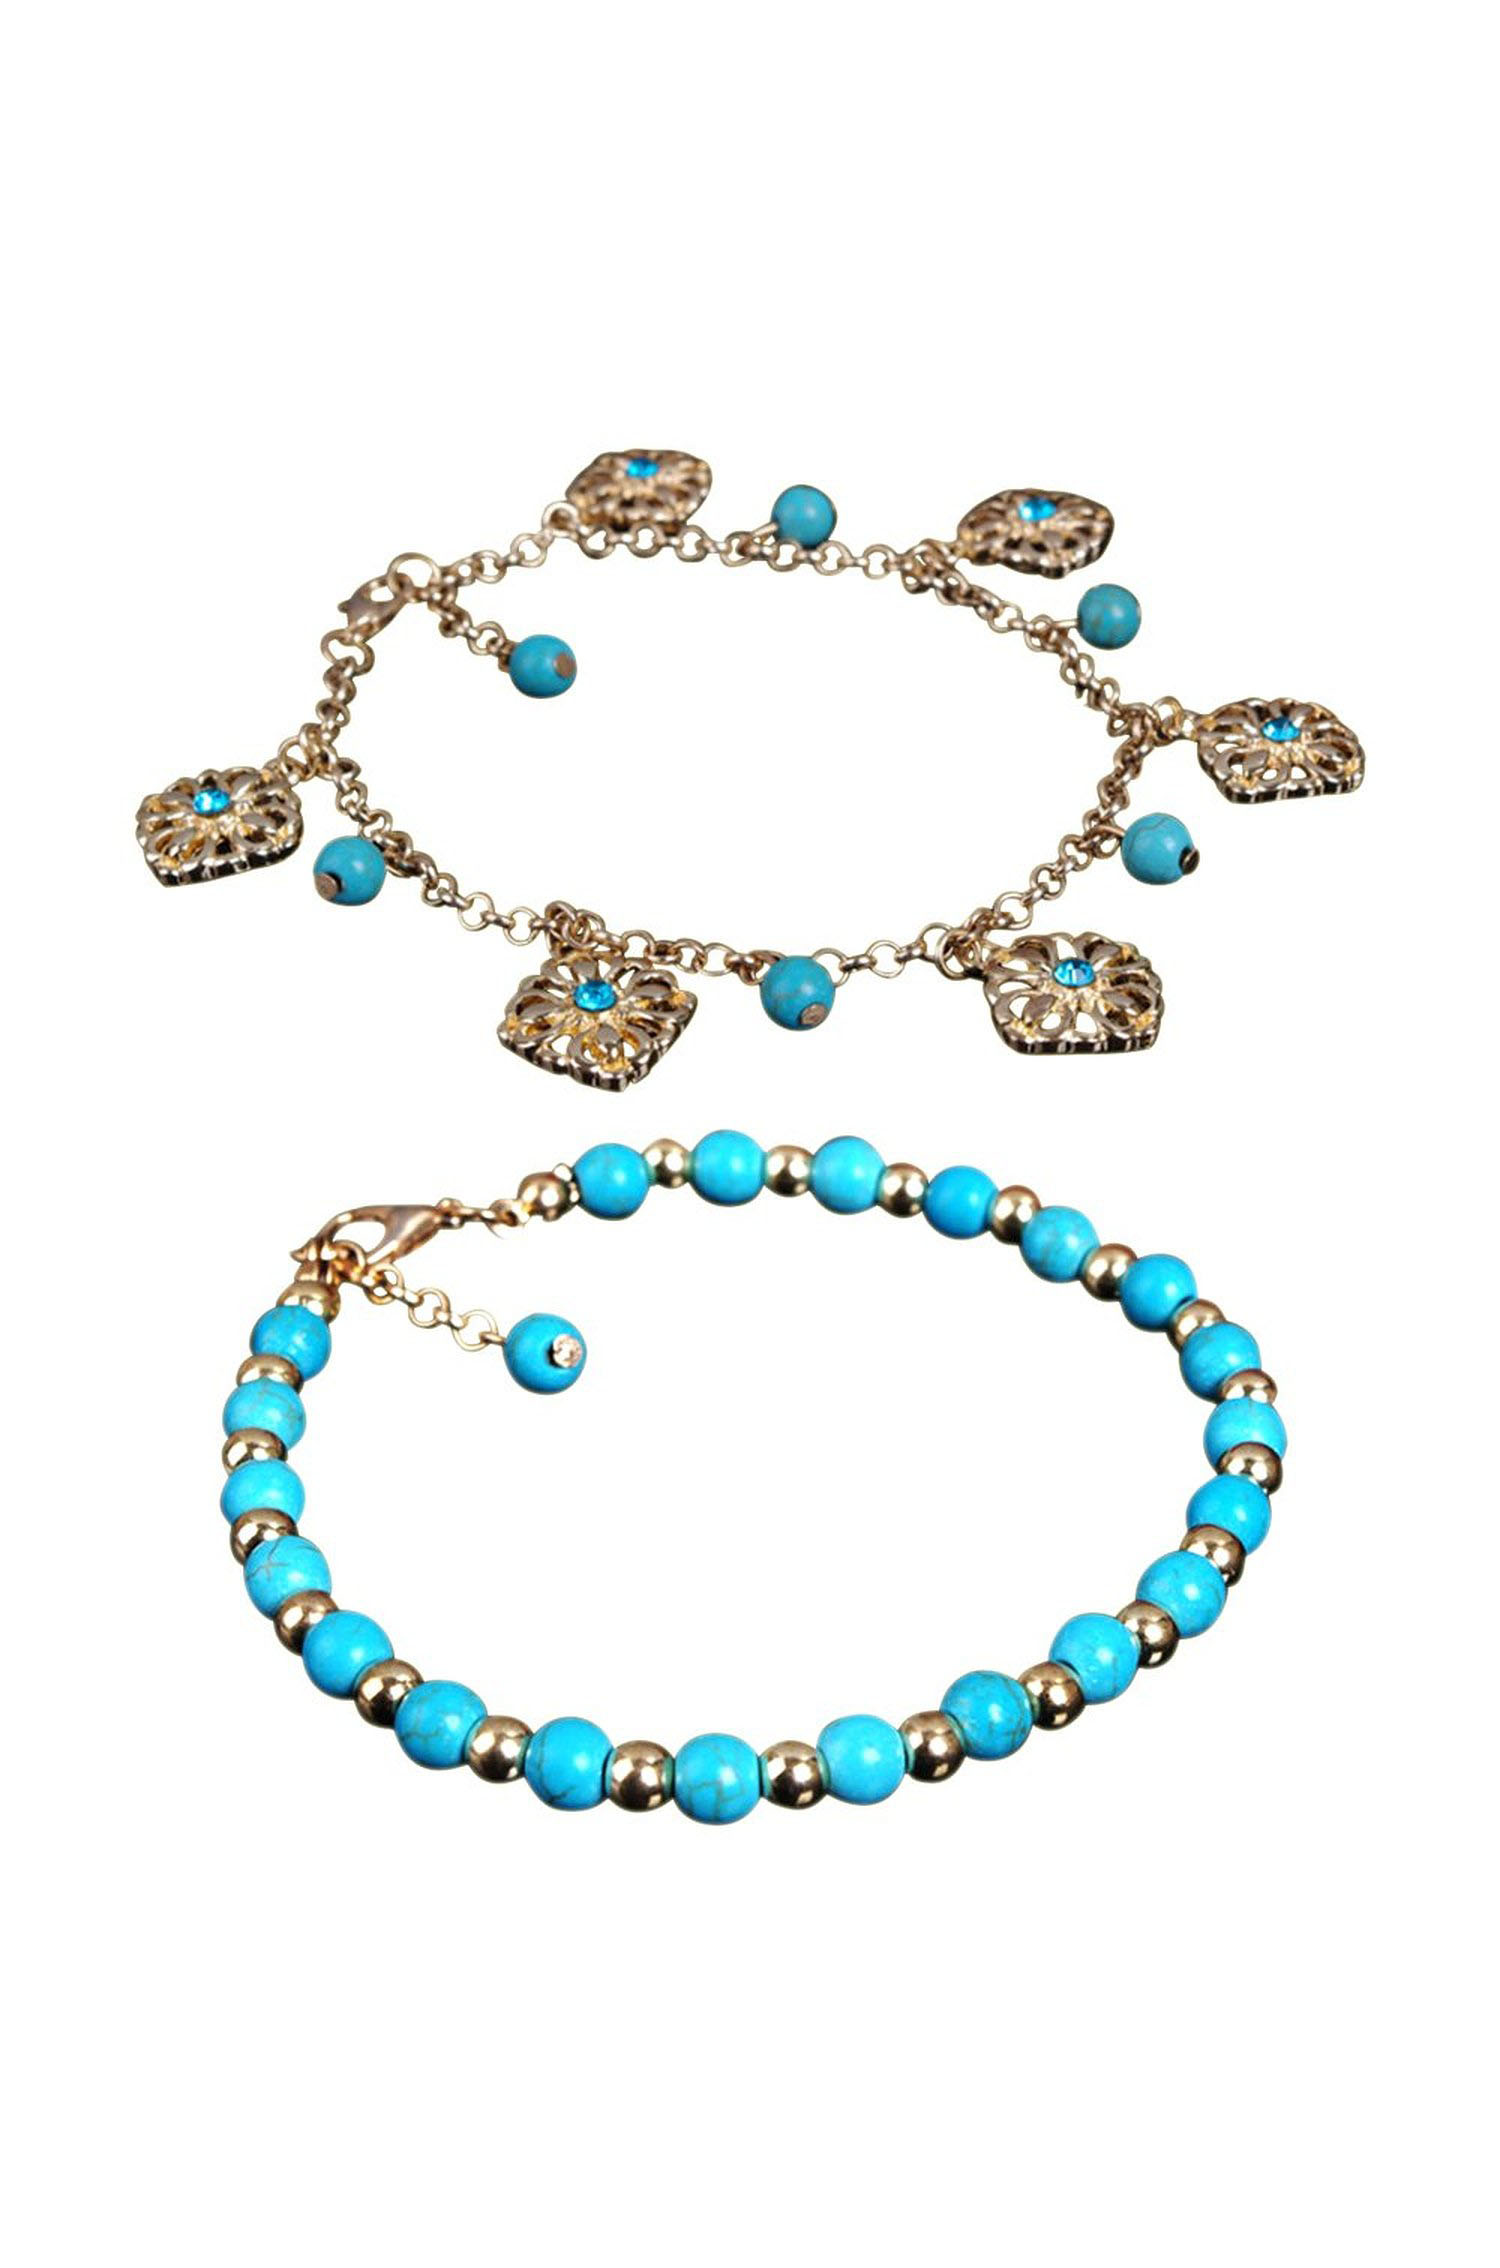 2x boho bracelet de cheville pied perles turquoise ethnique bracelet de fleur y3 ebay. Black Bedroom Furniture Sets. Home Design Ideas